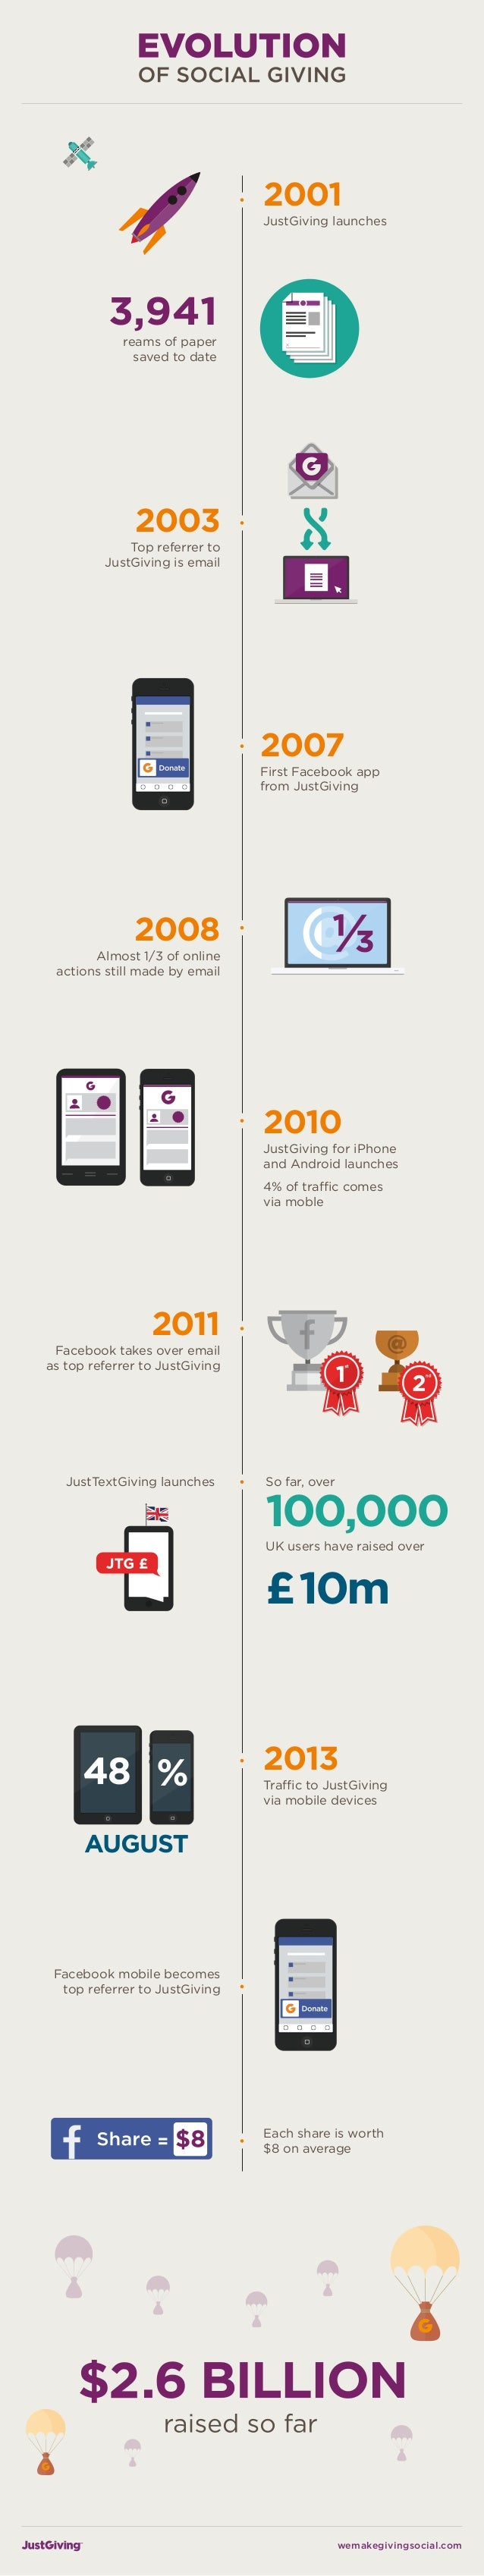 INFOGRAPHIC: Evolution of social giving 2013